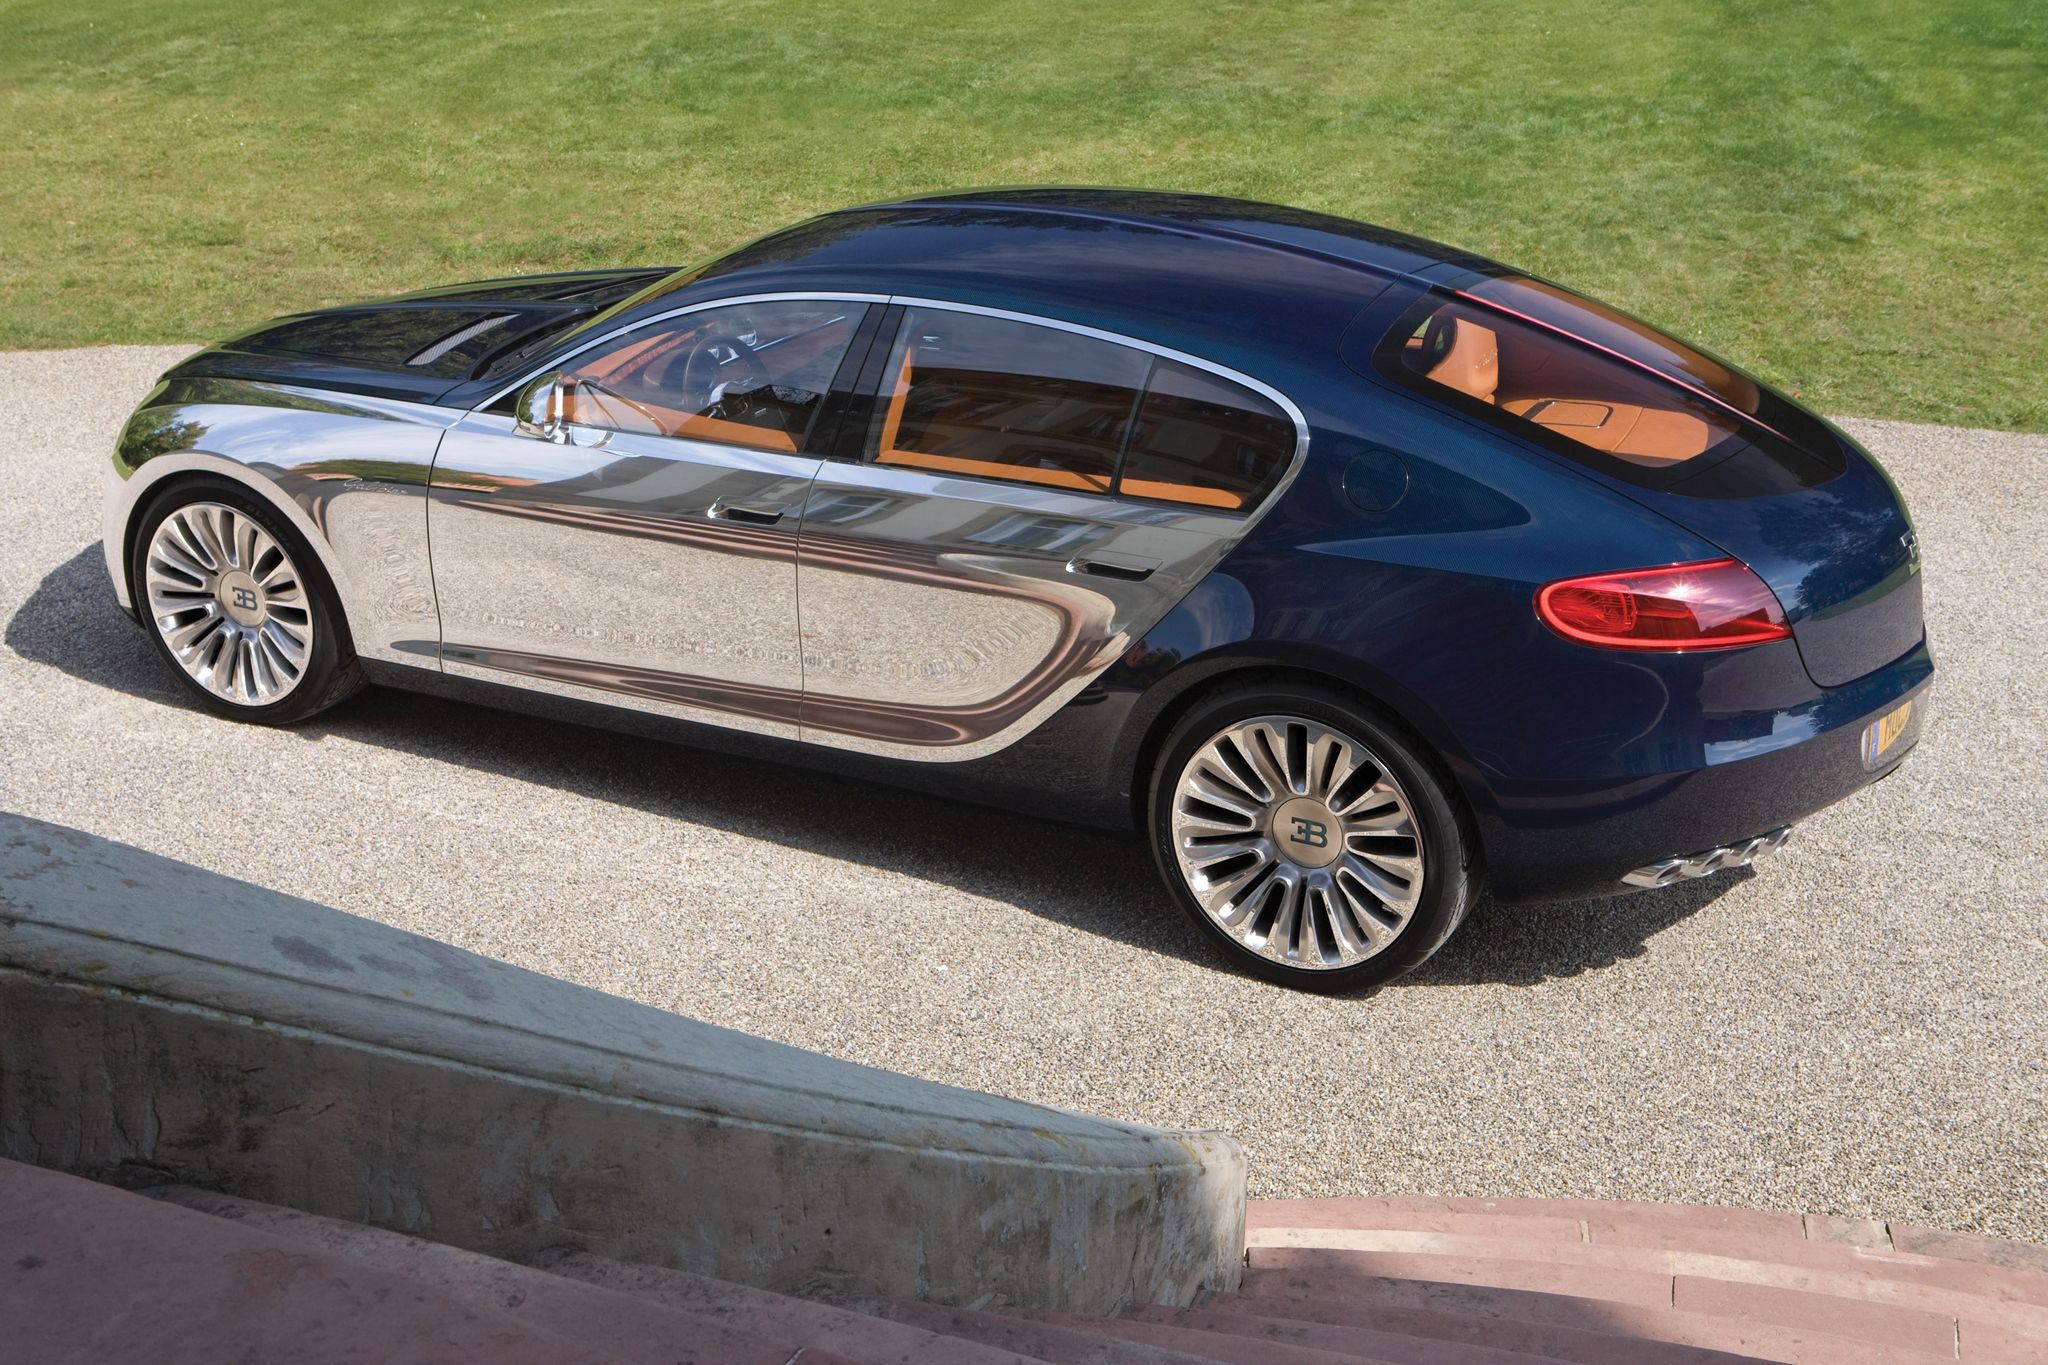 Bugatti's Next Car Could Reportedly Be a Four-Seat EV That's Under $1 Million